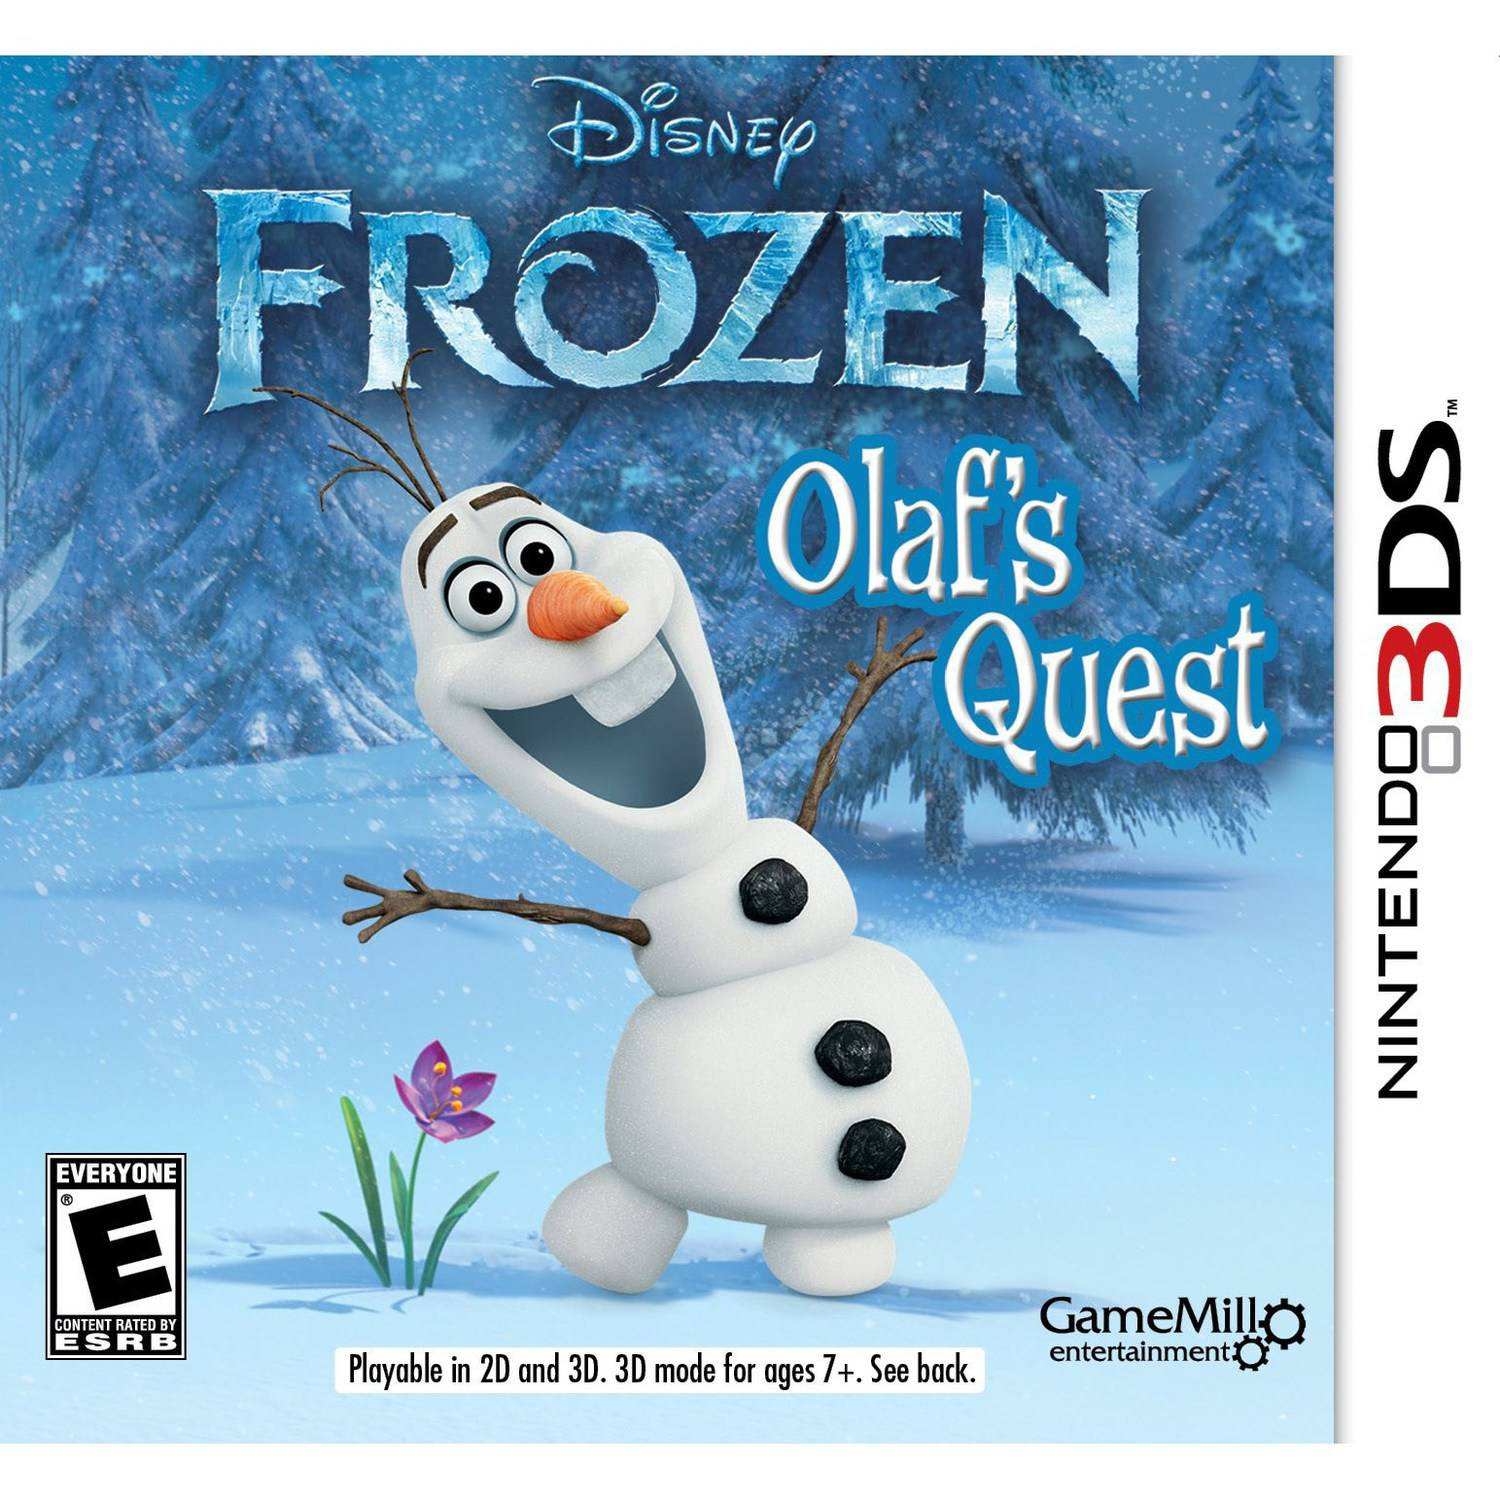 Disney Frozen: Olaf's Quest, Game Mill, Nintendo 3DS, Pre-Owned